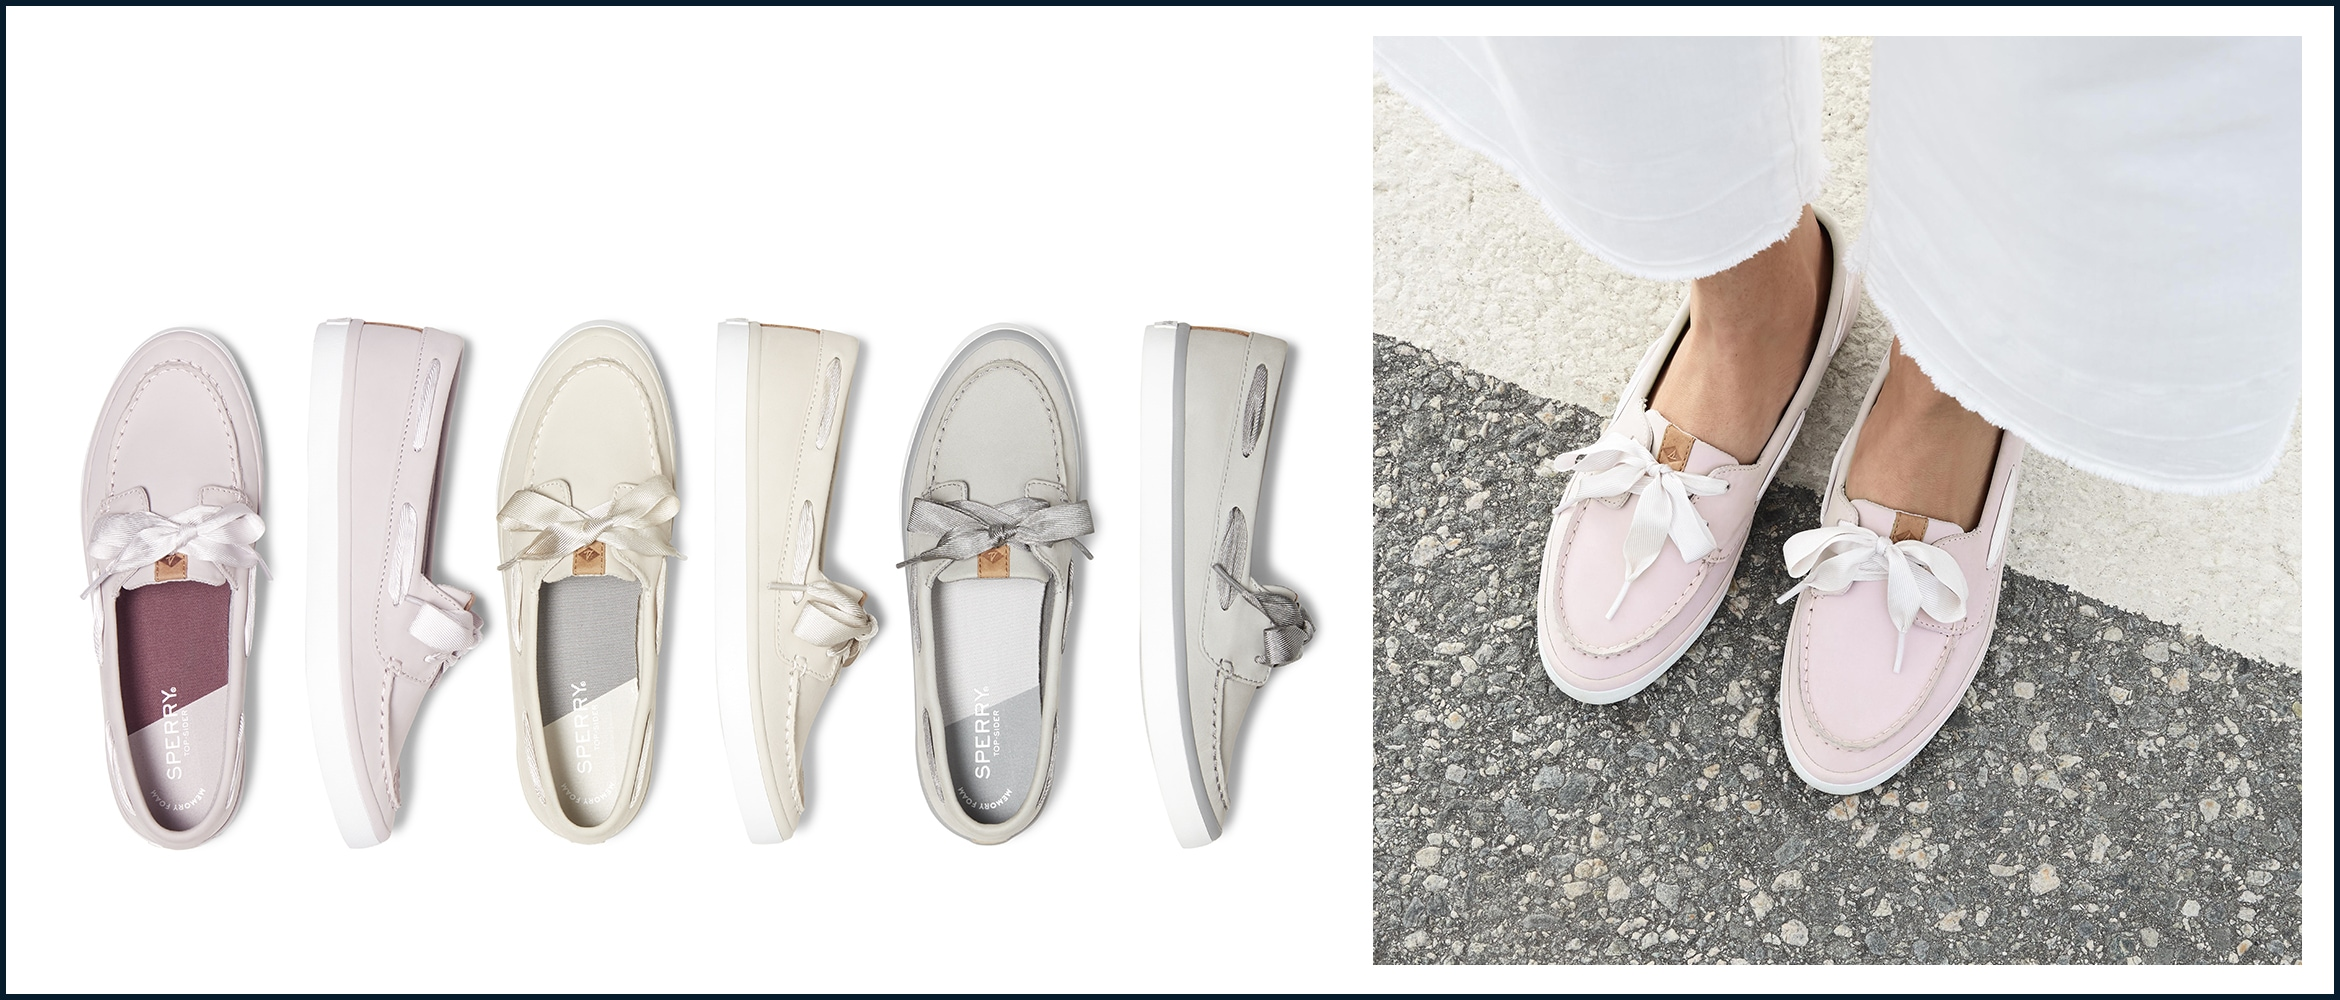 A variety of sailor boat shoes and a closeup of a women wearing a pair